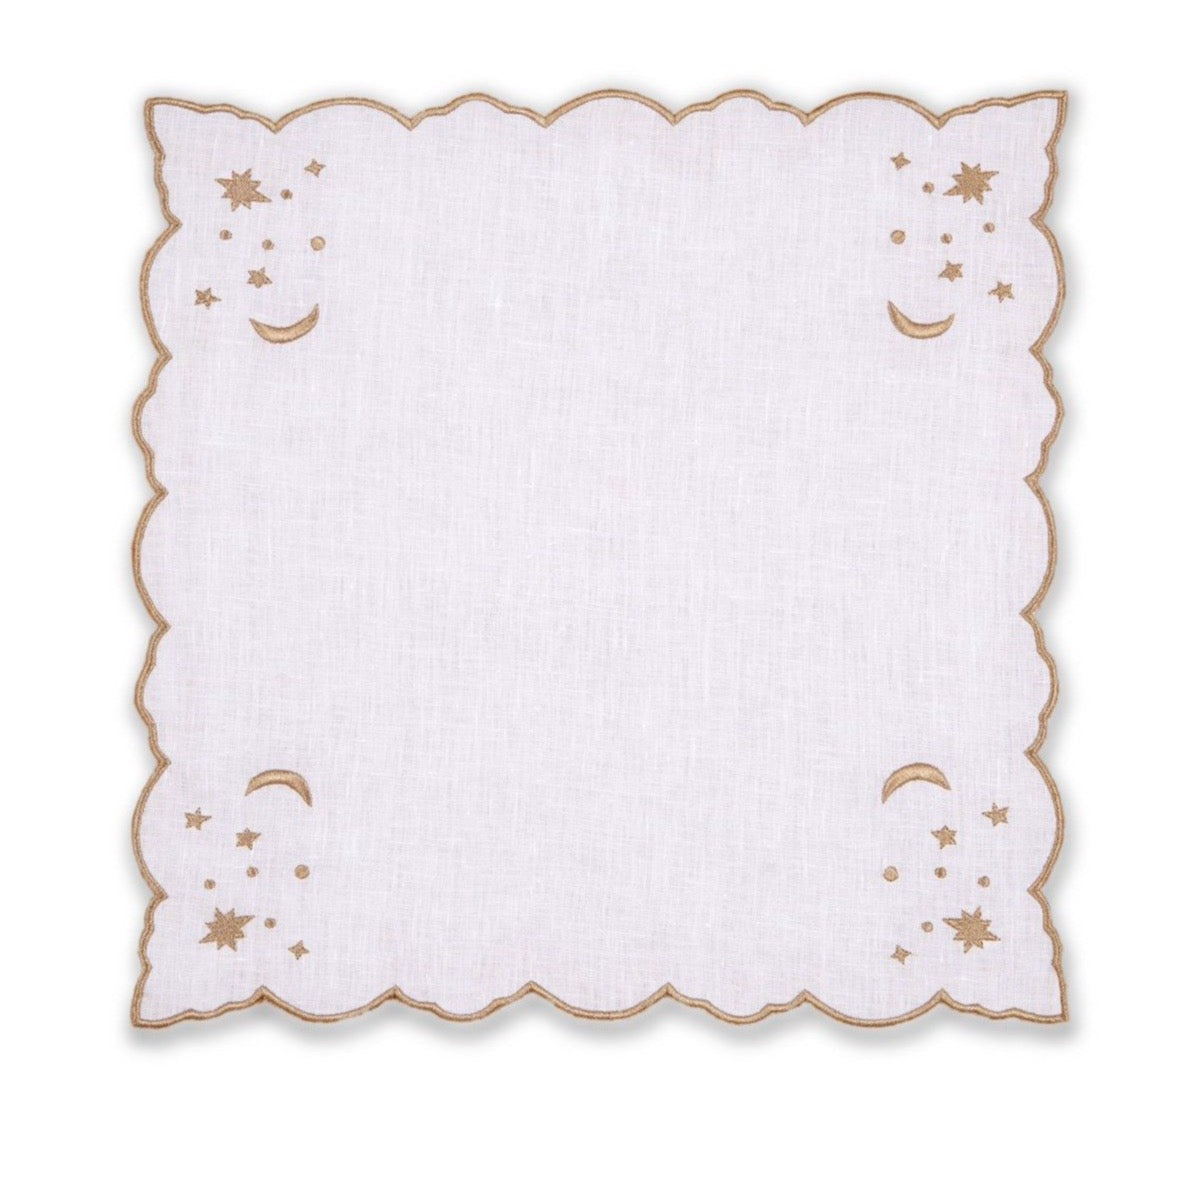 The Astral Linen Napkin in White Linen and Gold Embroidery